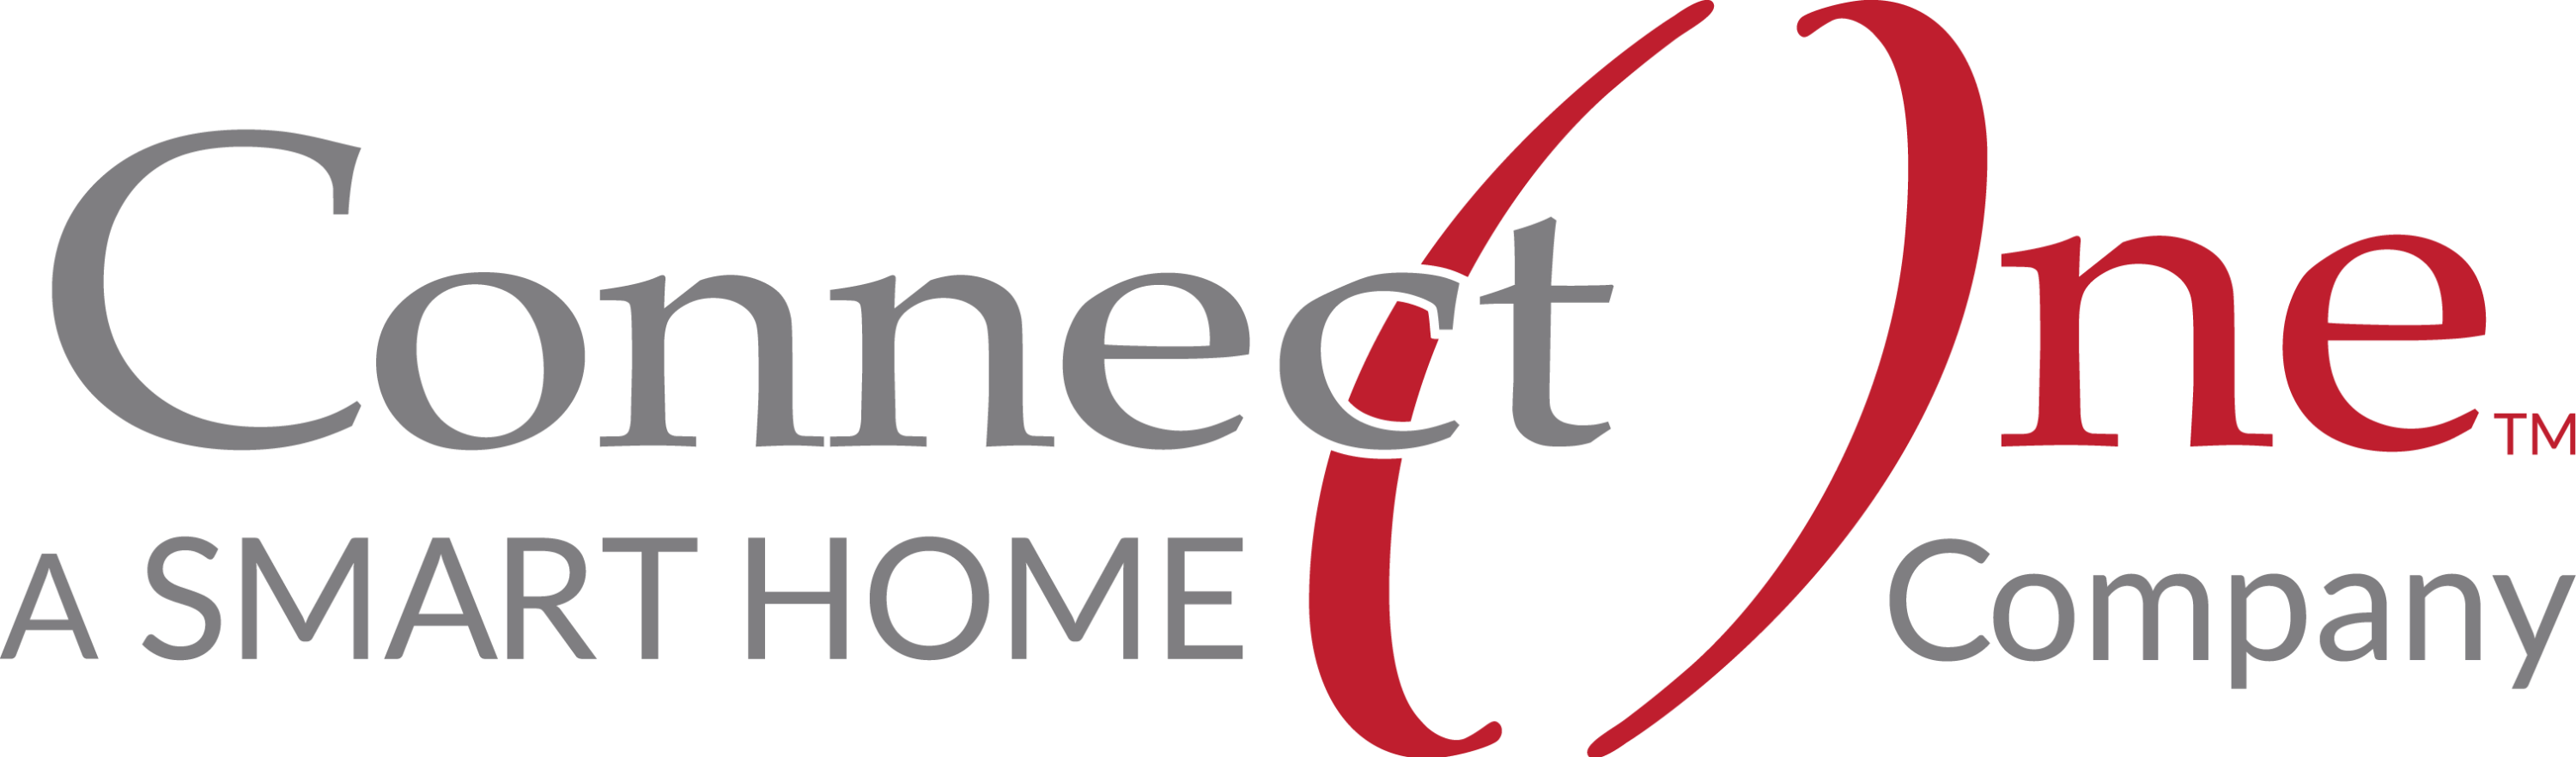 ConnectOne A SMART HOME Company